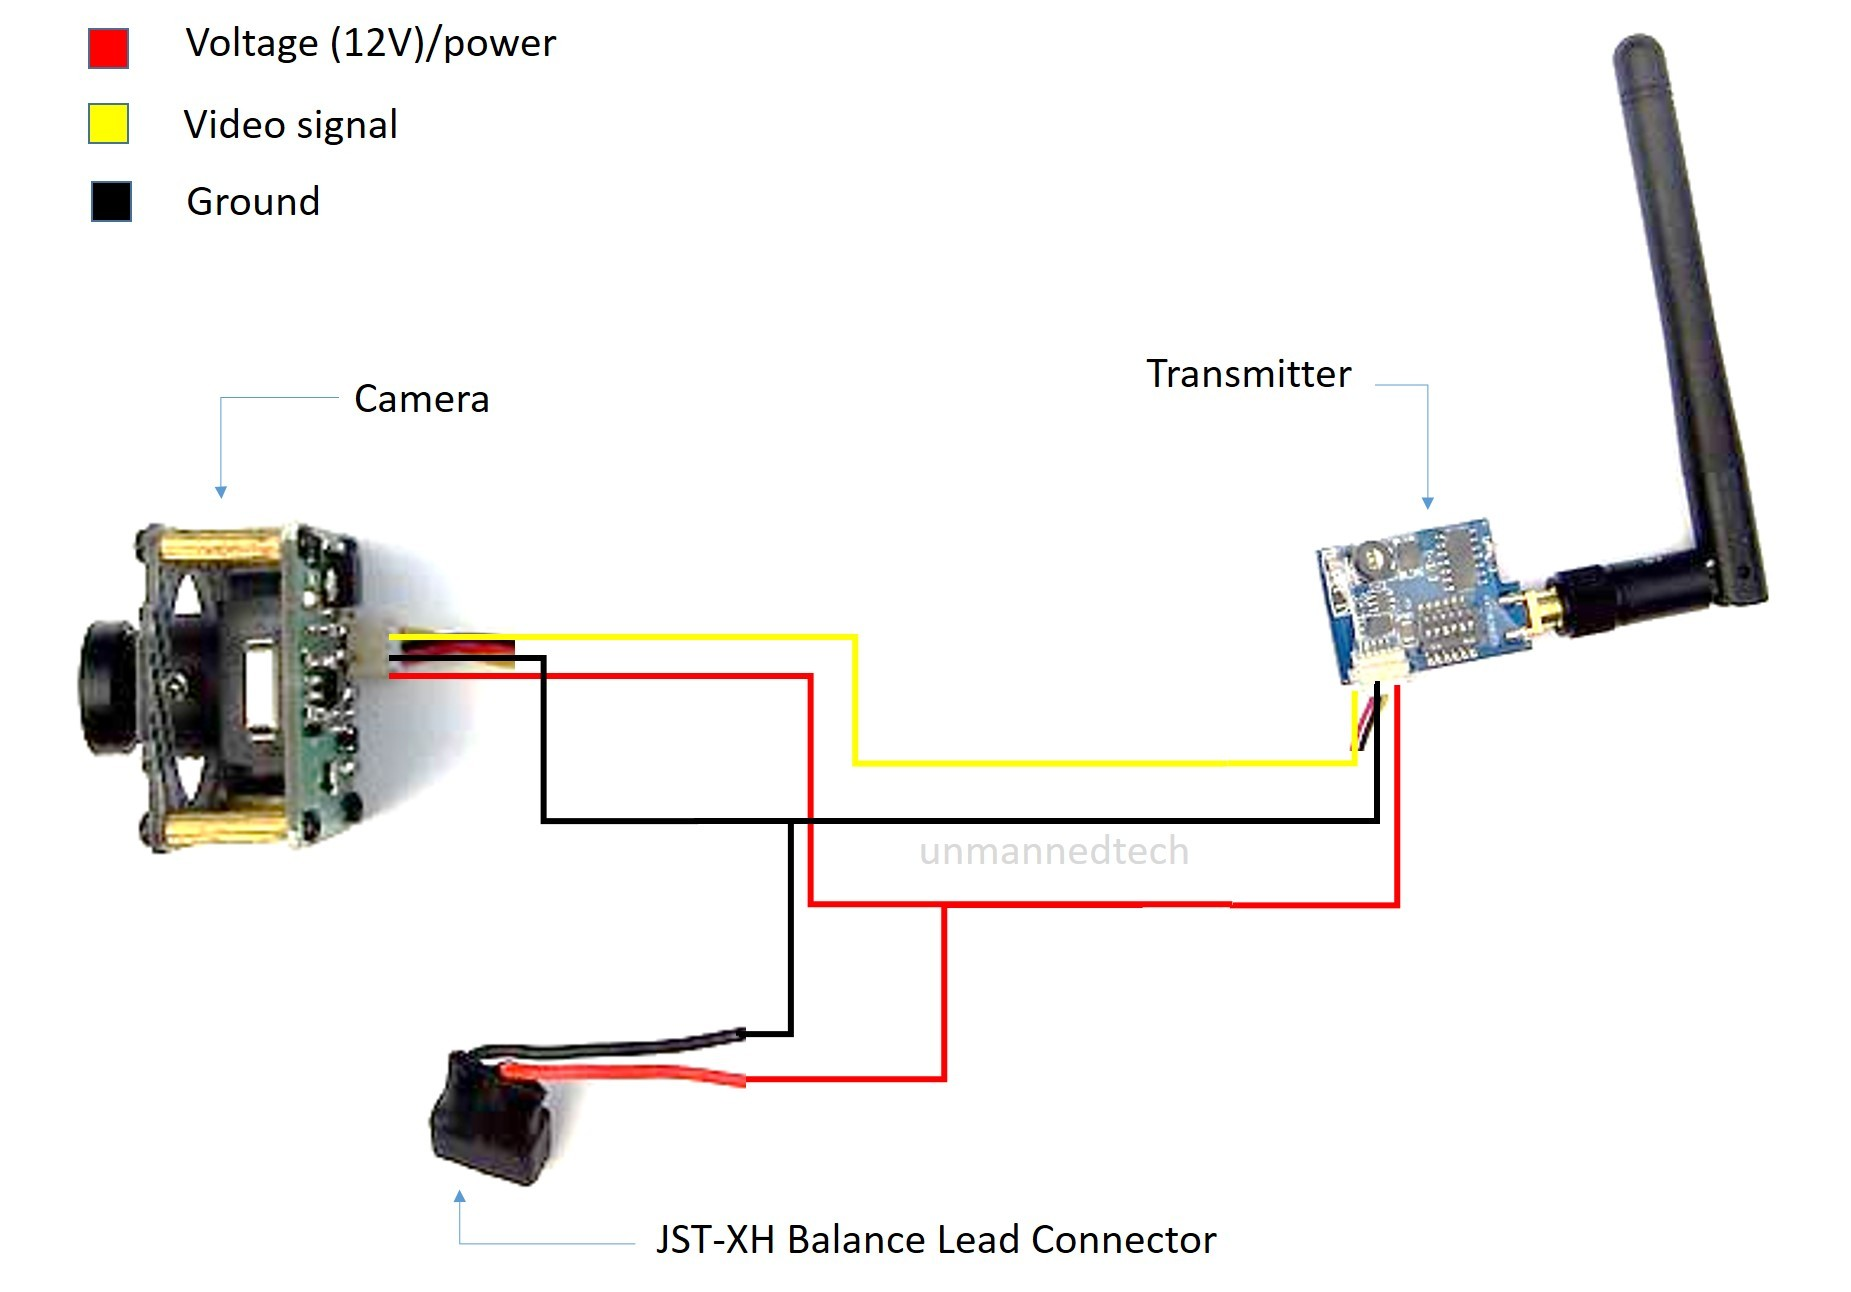 11dc91a32b8036ea330c17146c18564ab729ee8a Quadcopter Camera Wiring Diagram on tundra backup, honda backup, pioneer backup, toyota backup, ip ptz, tft backup, rv backup, samsung security, poe cable,